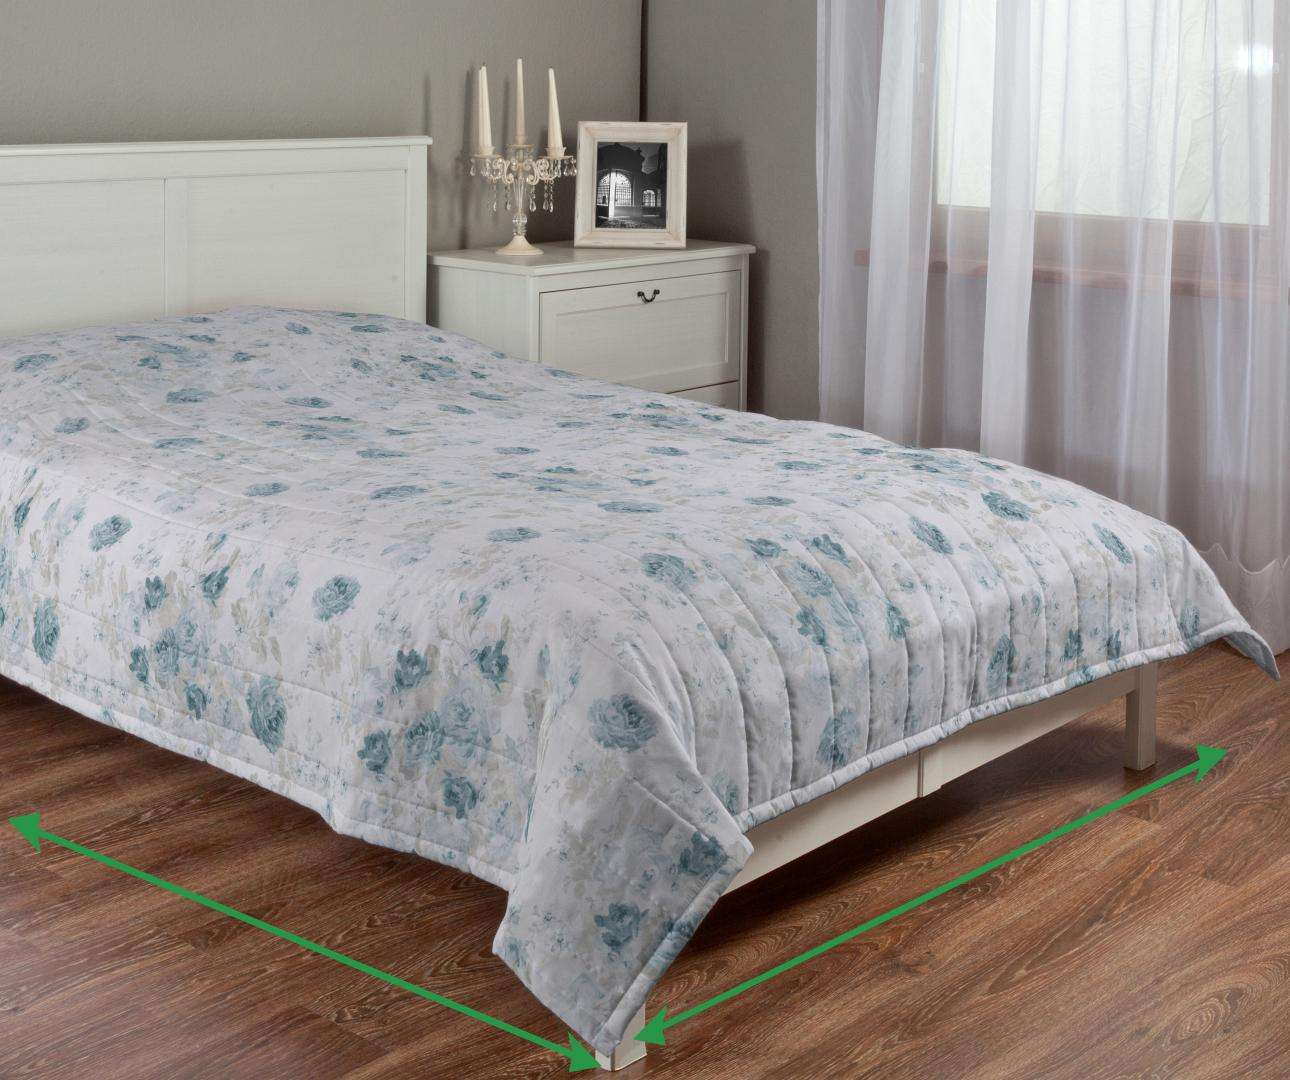 Quilted throw (vertical quilt pattern) in collection Flowers, fabric: 140-89